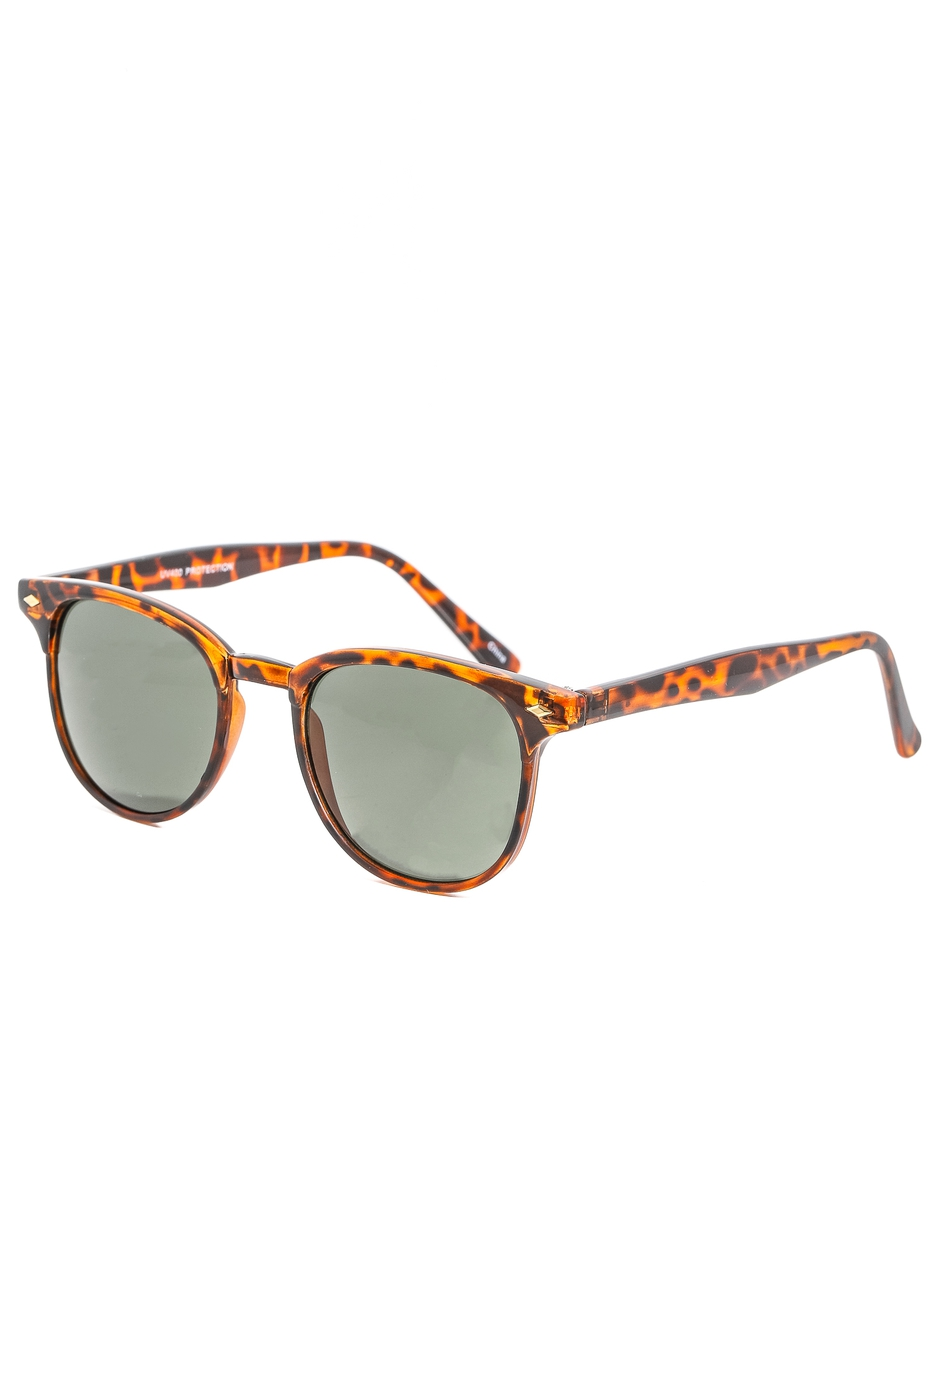 Acetate Square Rim Sunglasses - orangeshine.com